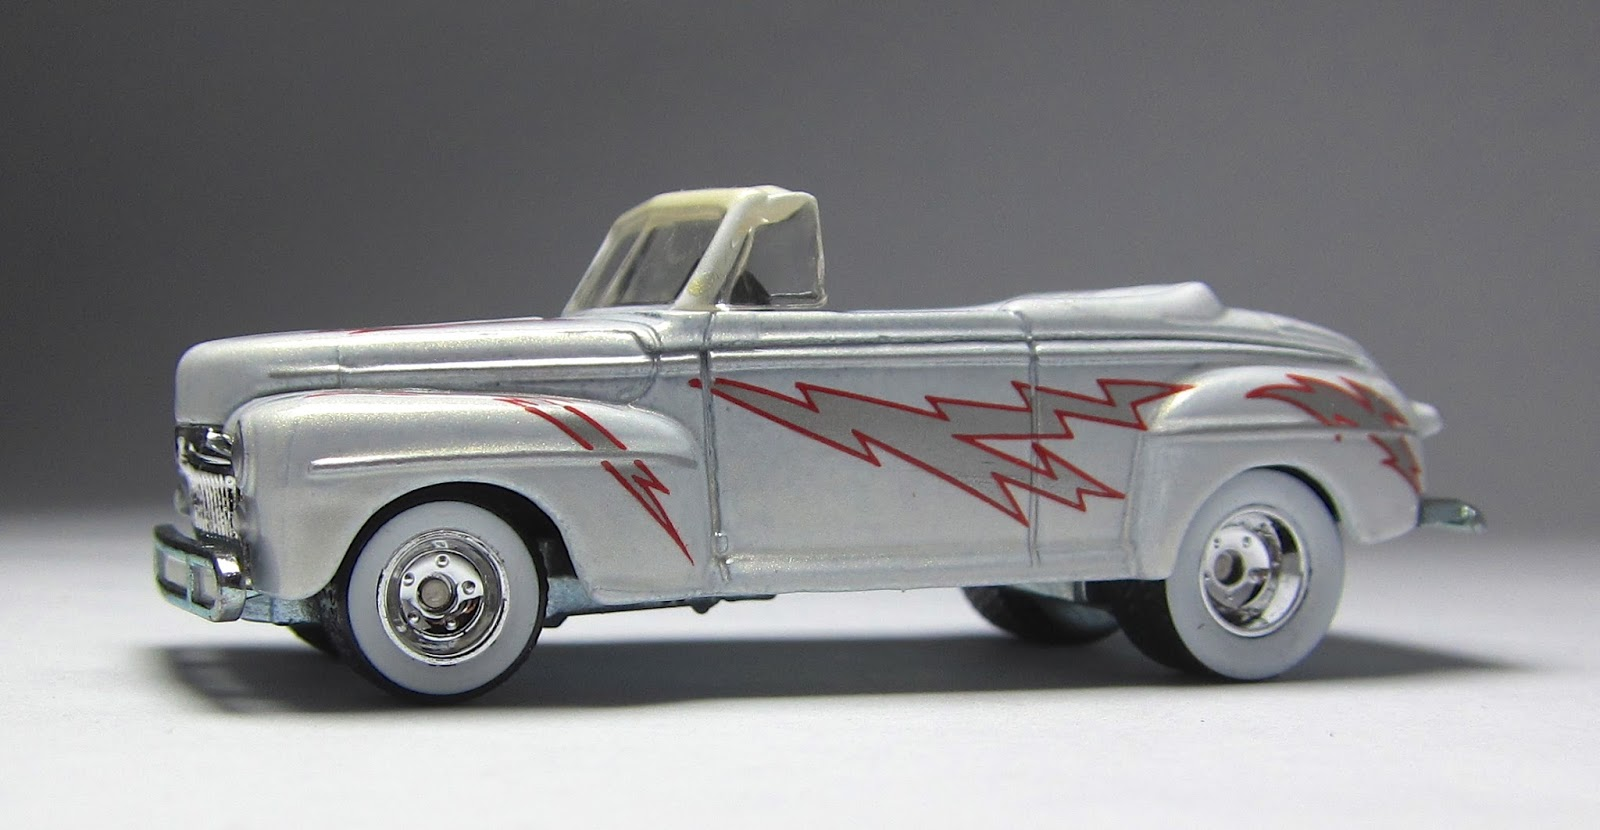 Filme Do Hot Wheels pertaining to first look: hot wheels retro entertainment '48 ford & '58 impala